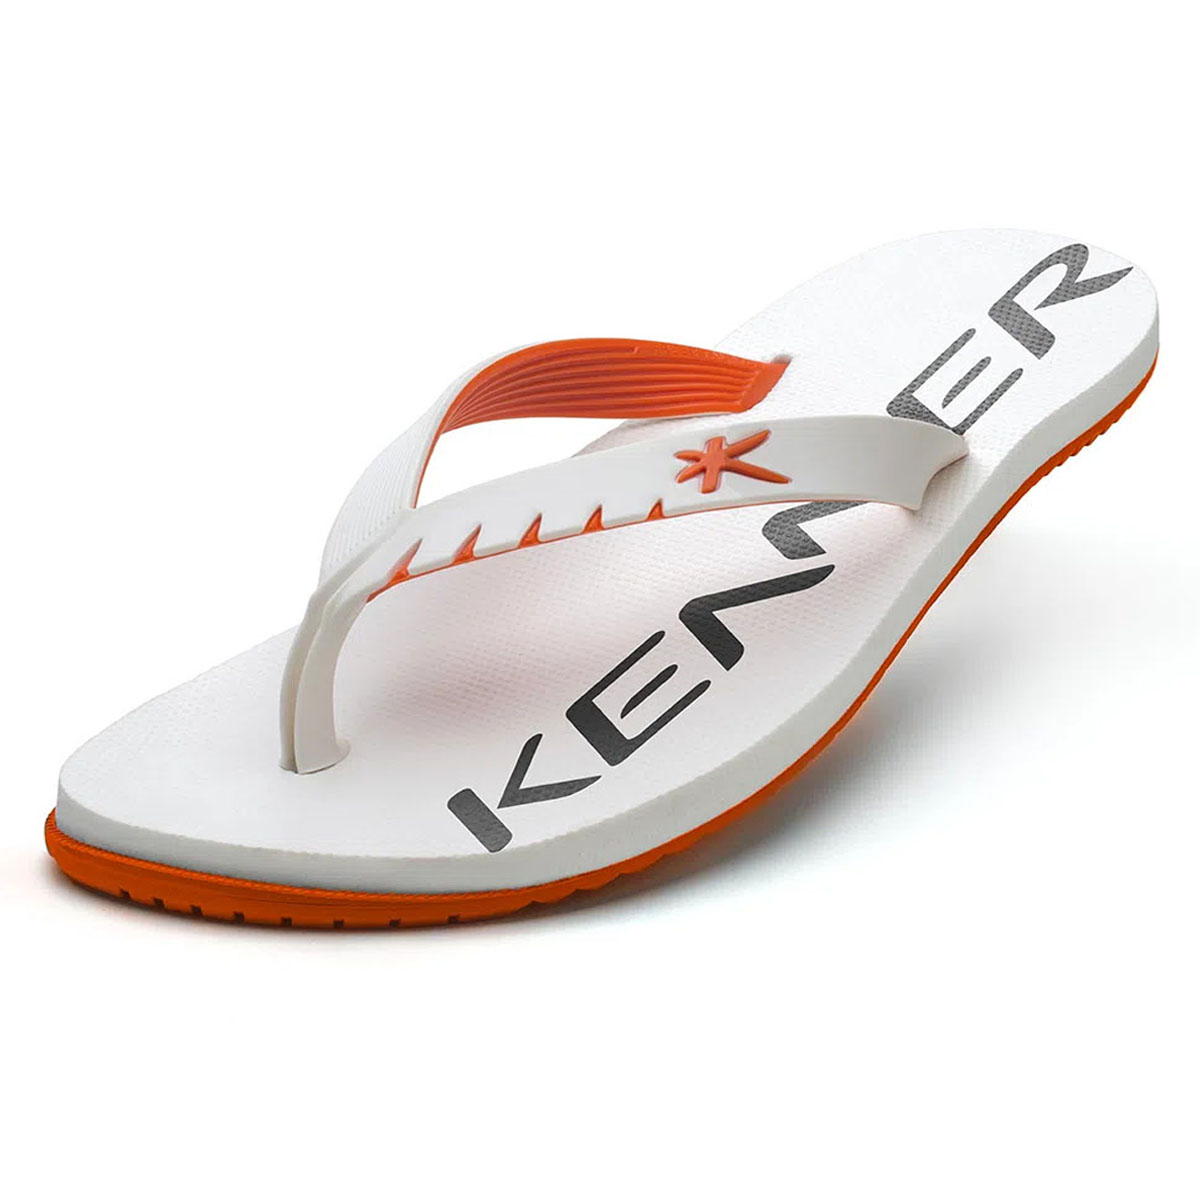 Chinelo Kenner Masculino Red Branco